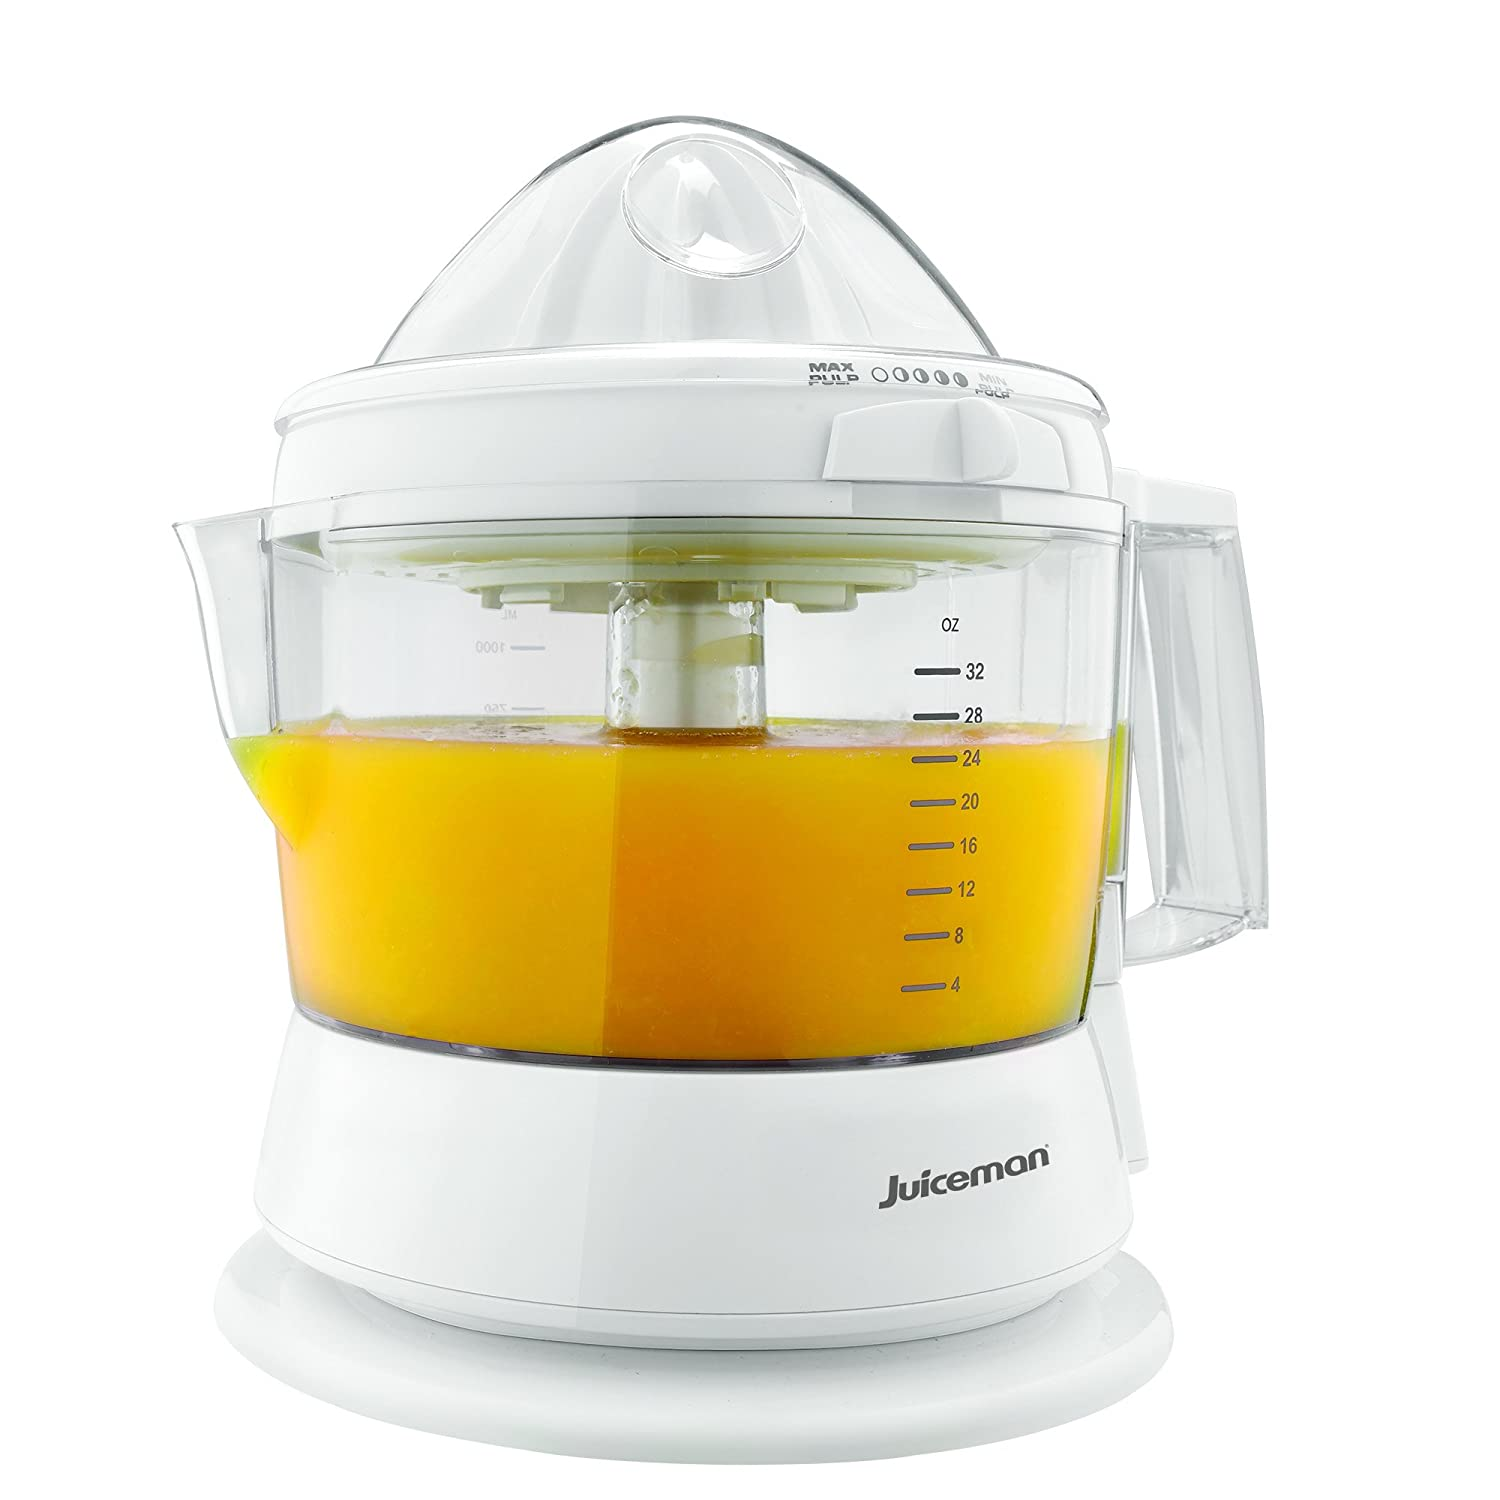 Juiceman Citrus Juicer, White, CJ630-2J